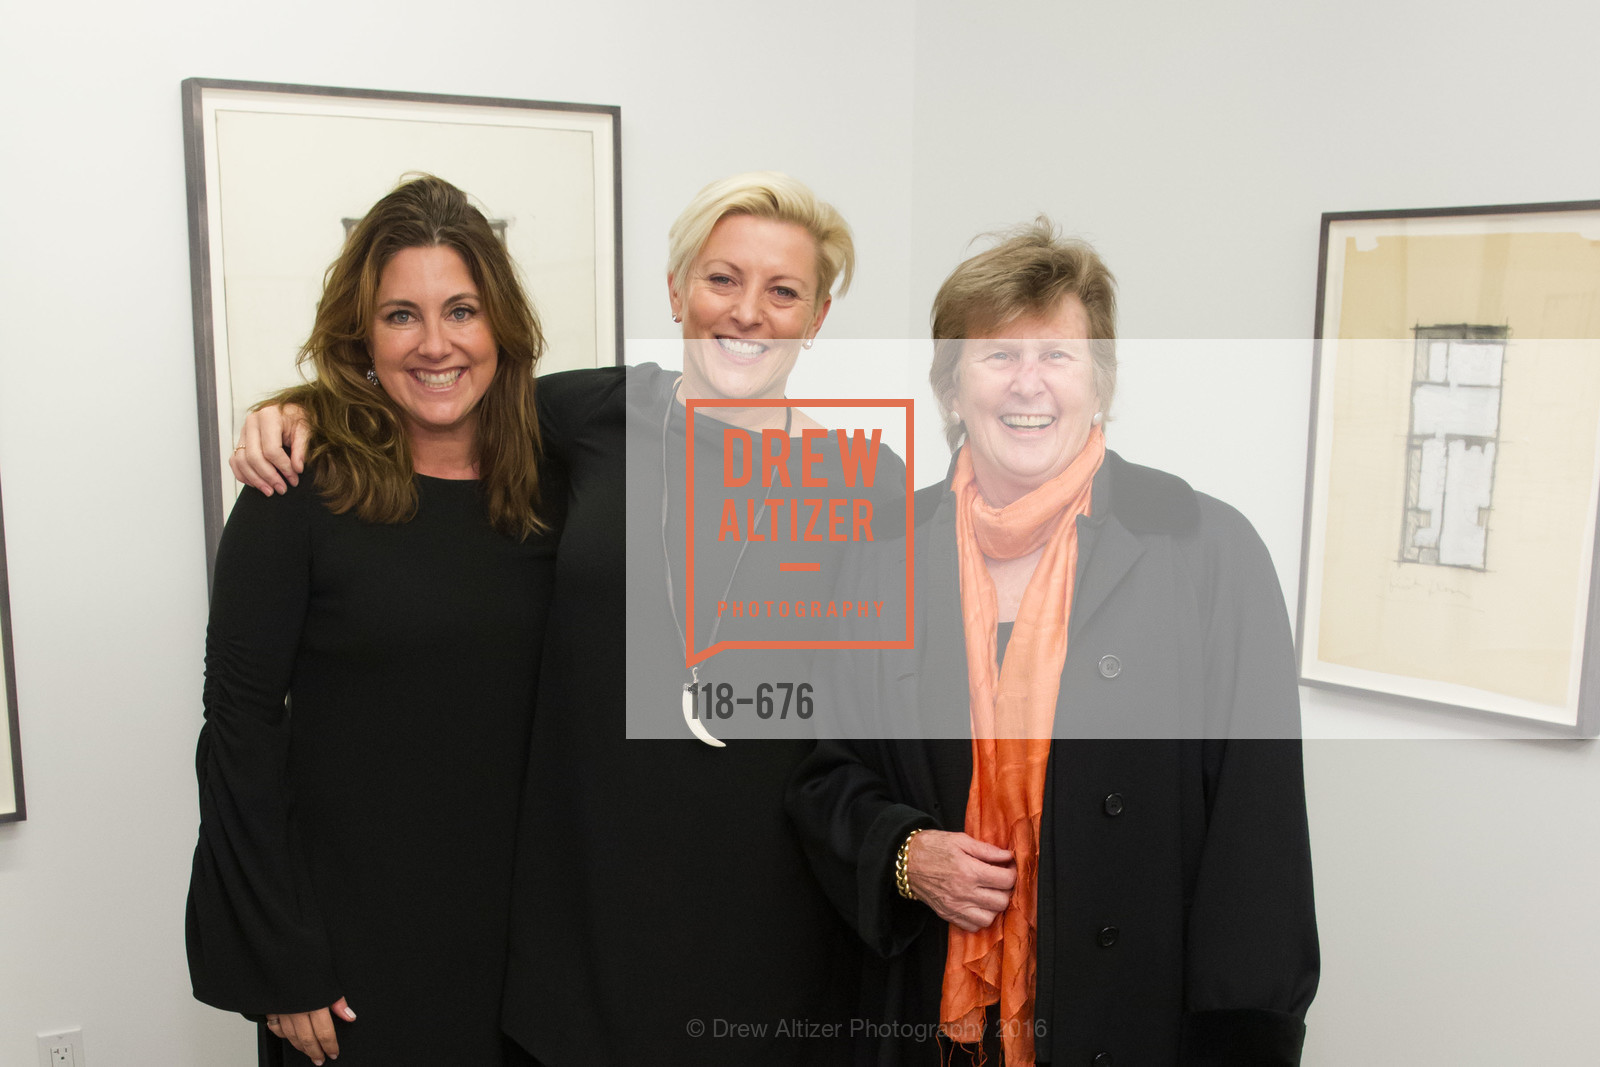 Shawn Pleiman, Carlie Wilmans, Carol Casey, 500 Capp Street Preview Reception, 500 Capp Street Foundation. 500 Capp Street, January 7th, 2016,Drew Altizer, Drew Altizer Photography, full-service event agency, private events, San Francisco photographer, photographer California